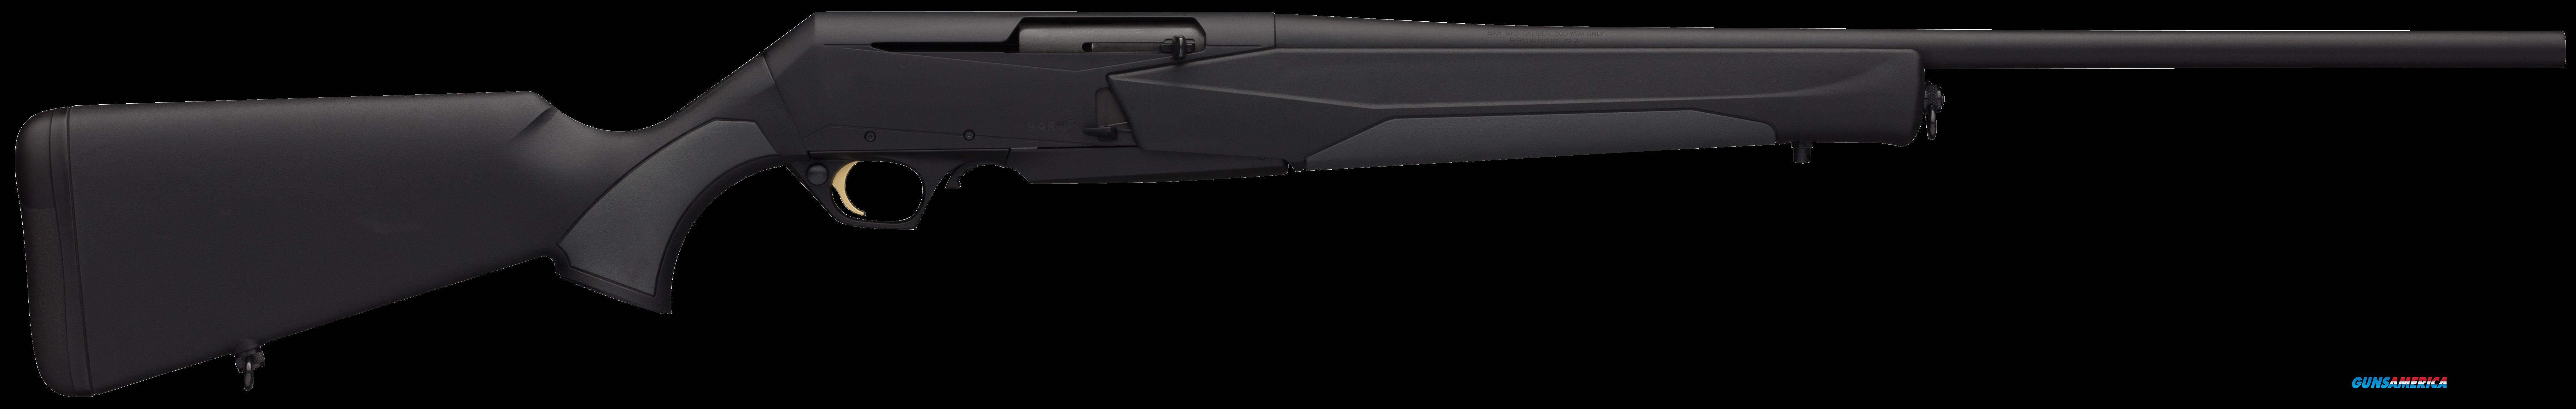 "Browning 031048226 BAR MK3 Stalker Semi-Automatic 30-06 Springfield 22"" 4+1 Synthetic Black Stk  Guns > Rifles > B Misc Rifles"